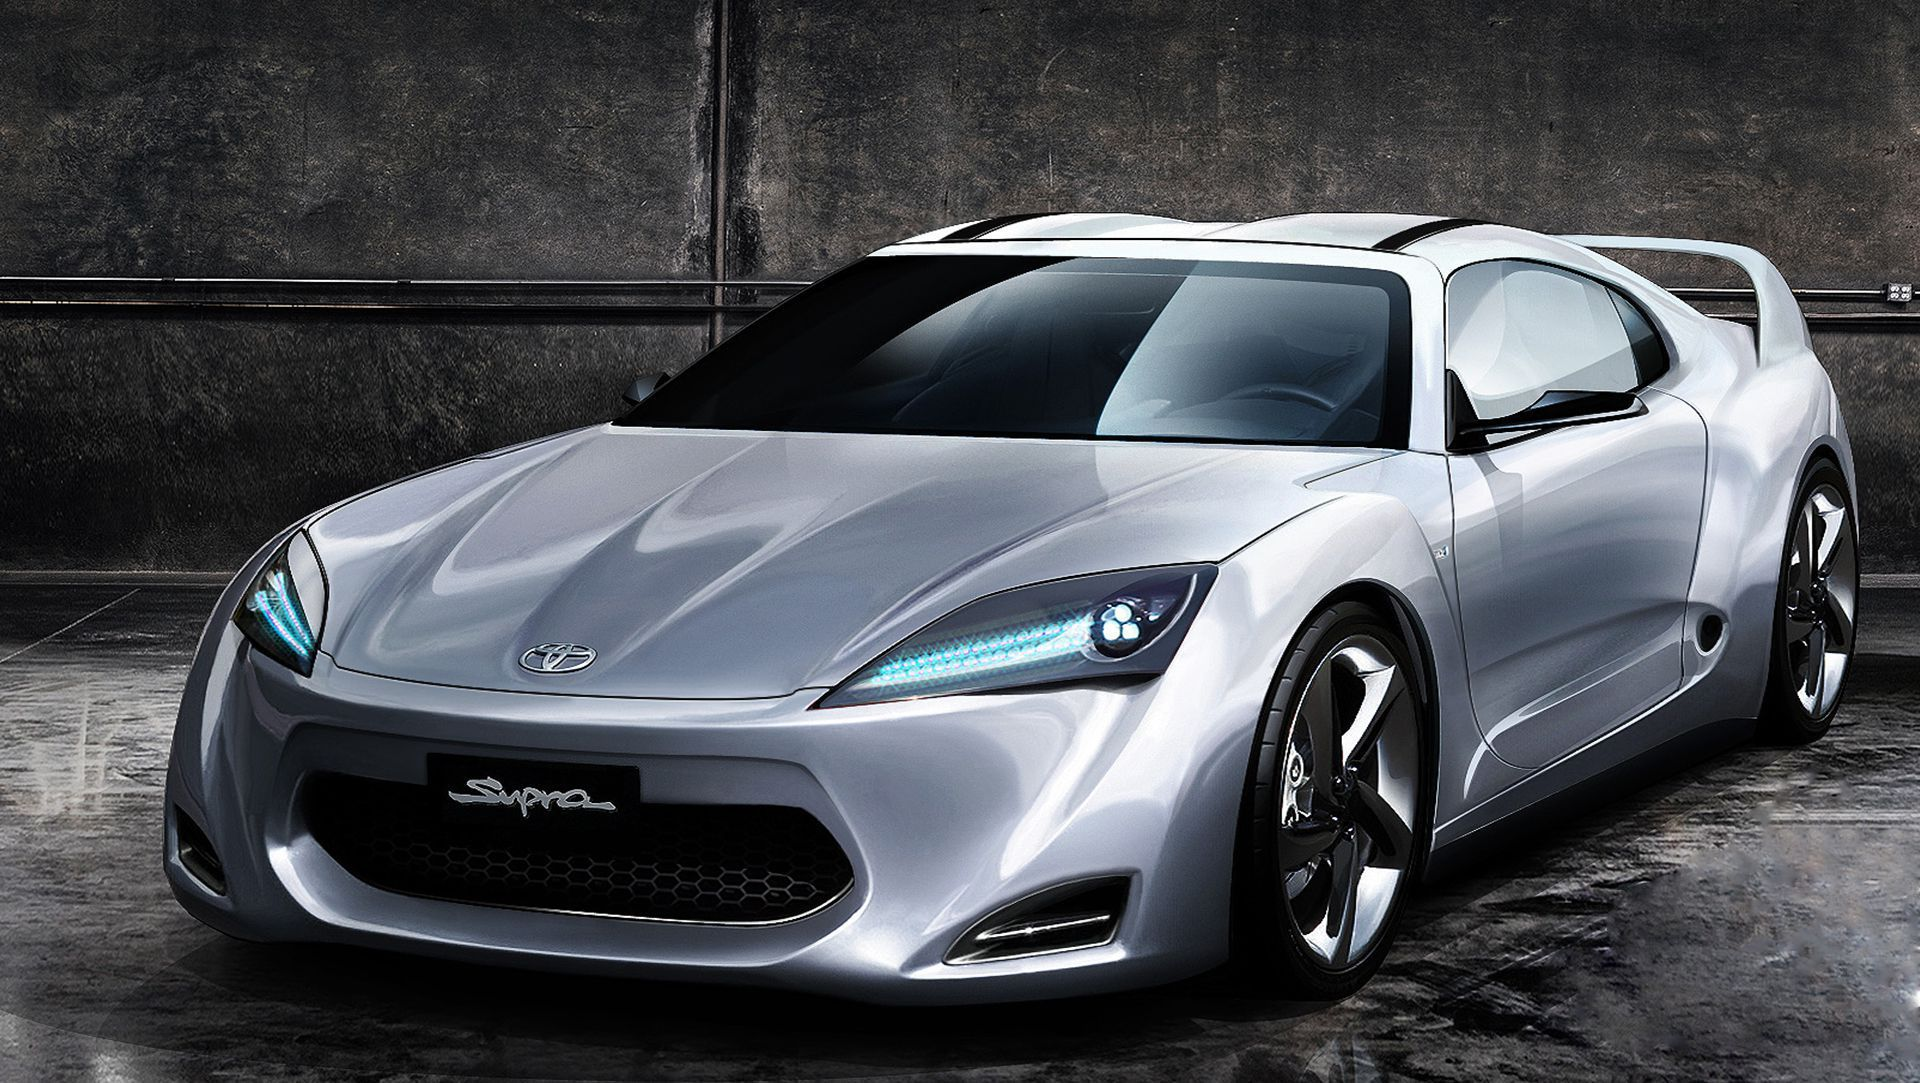 Toyota Supra Name Likely For Resurrection Auto Moto An Bullet